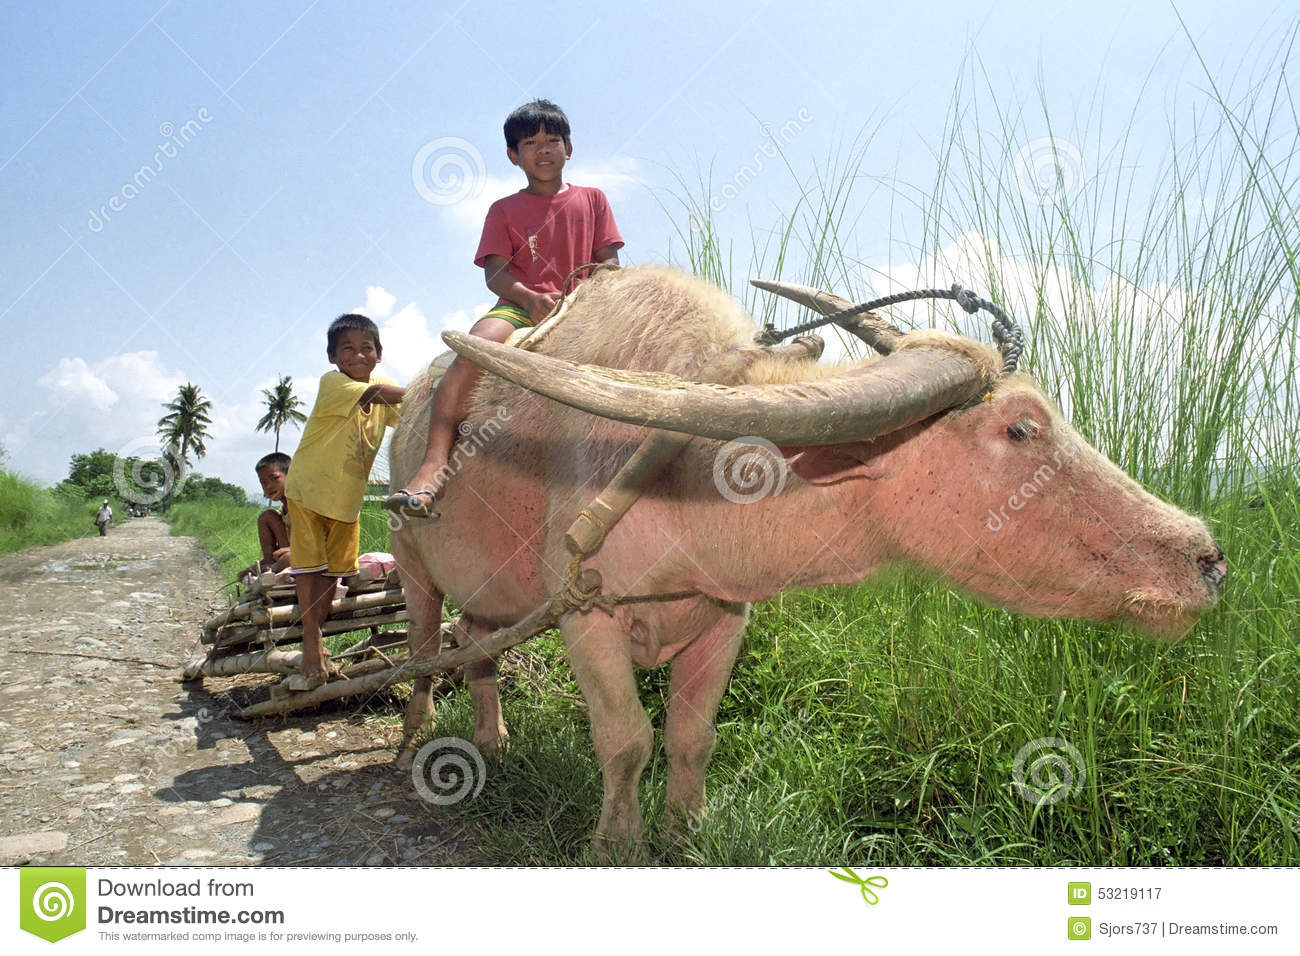 Group portrait of boys riding on a water buffalo